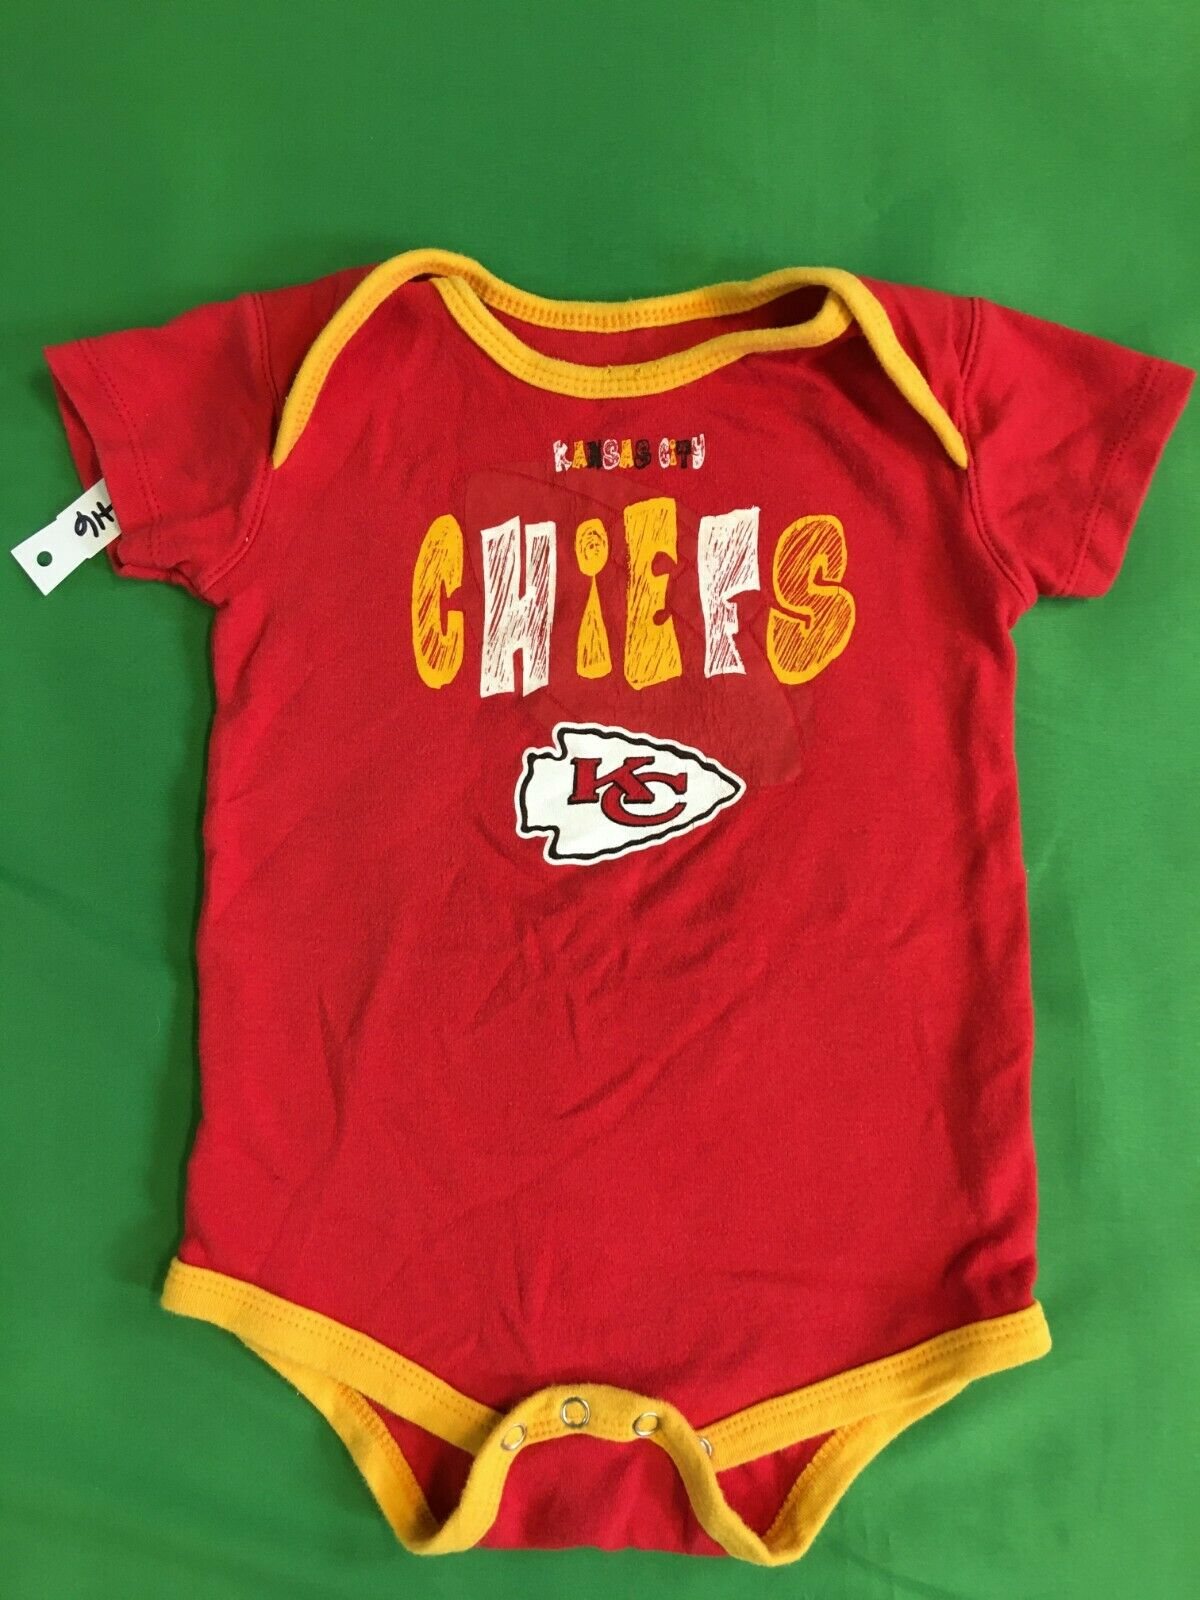 B416/100 NFL Kansas City Chiefs Handwriting Style Baby-Grow 24 months